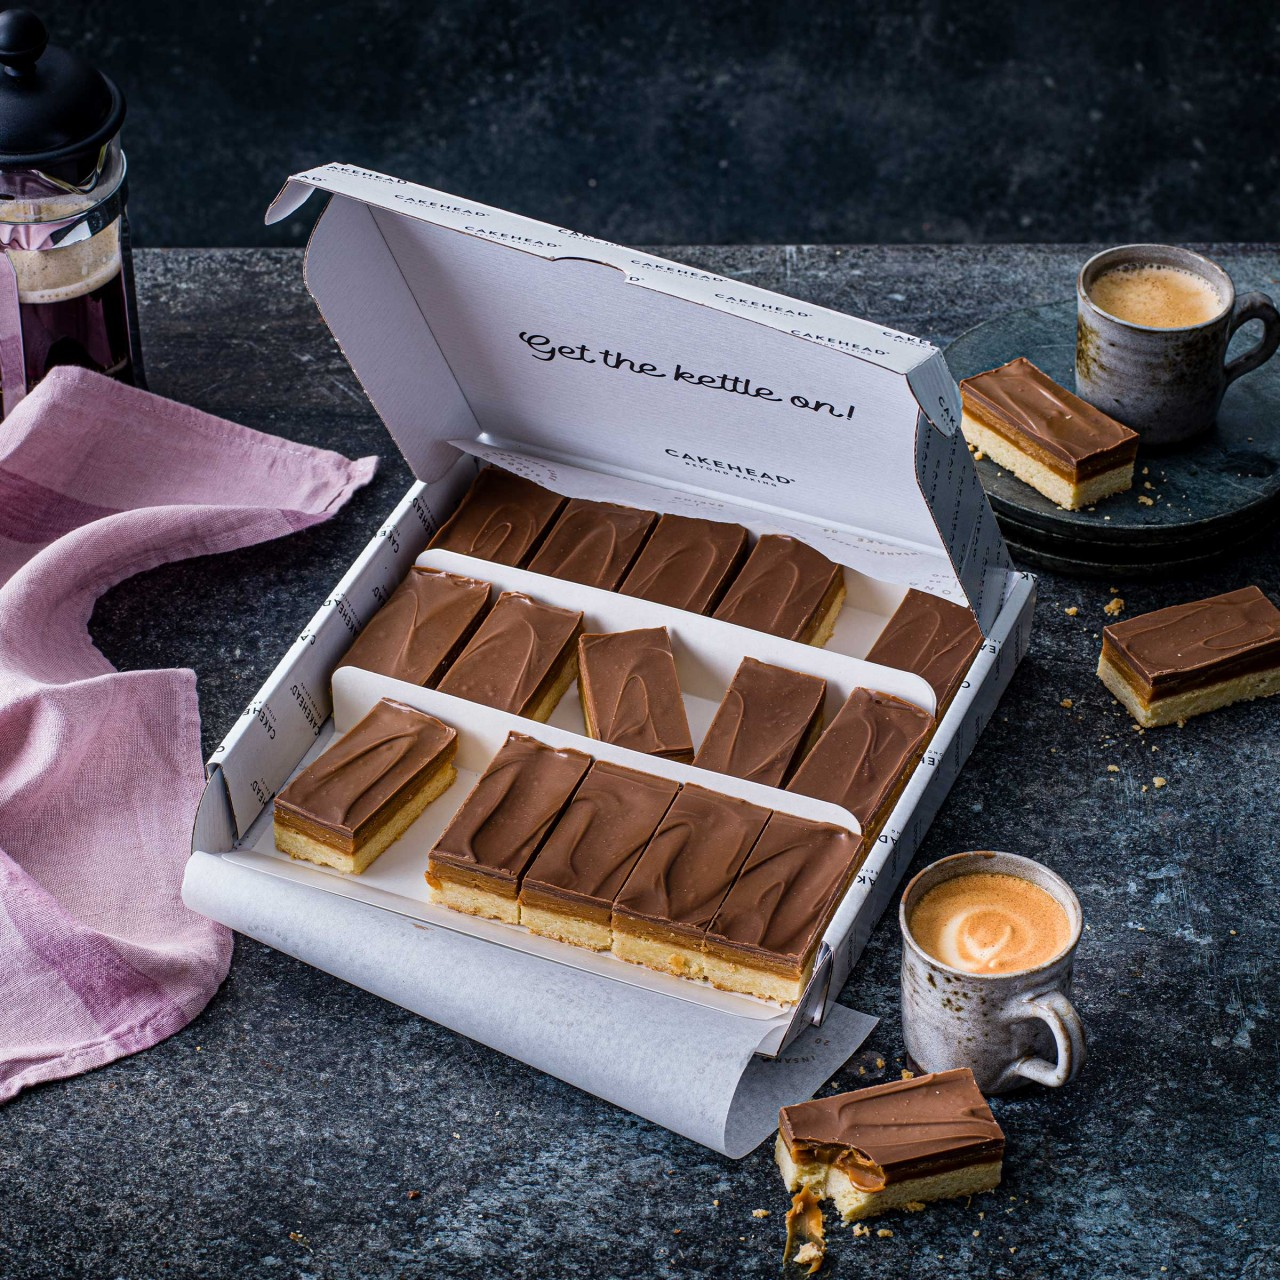 Award Winning Caramel Shortbread Box - Image